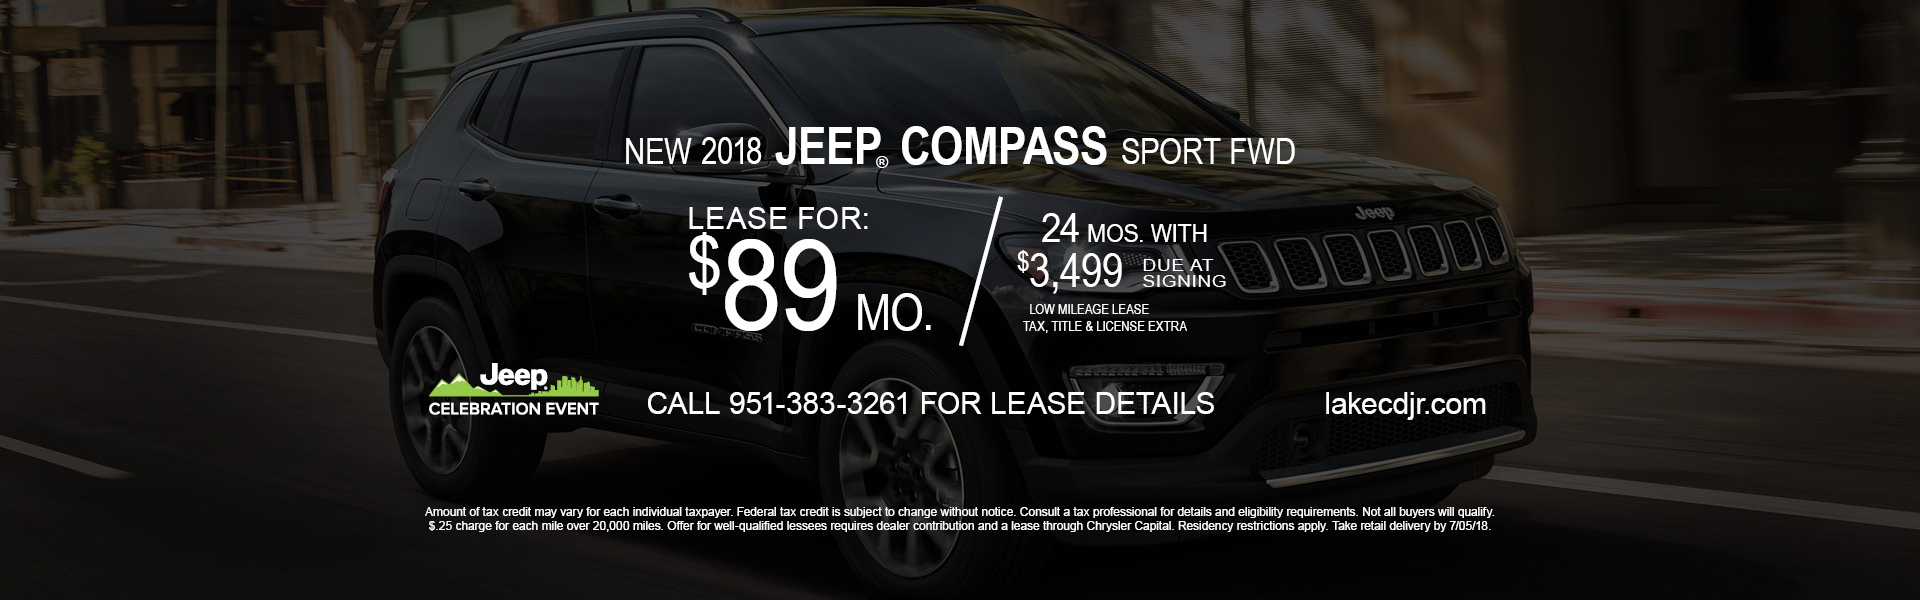 Jeep Compass $89 Lease